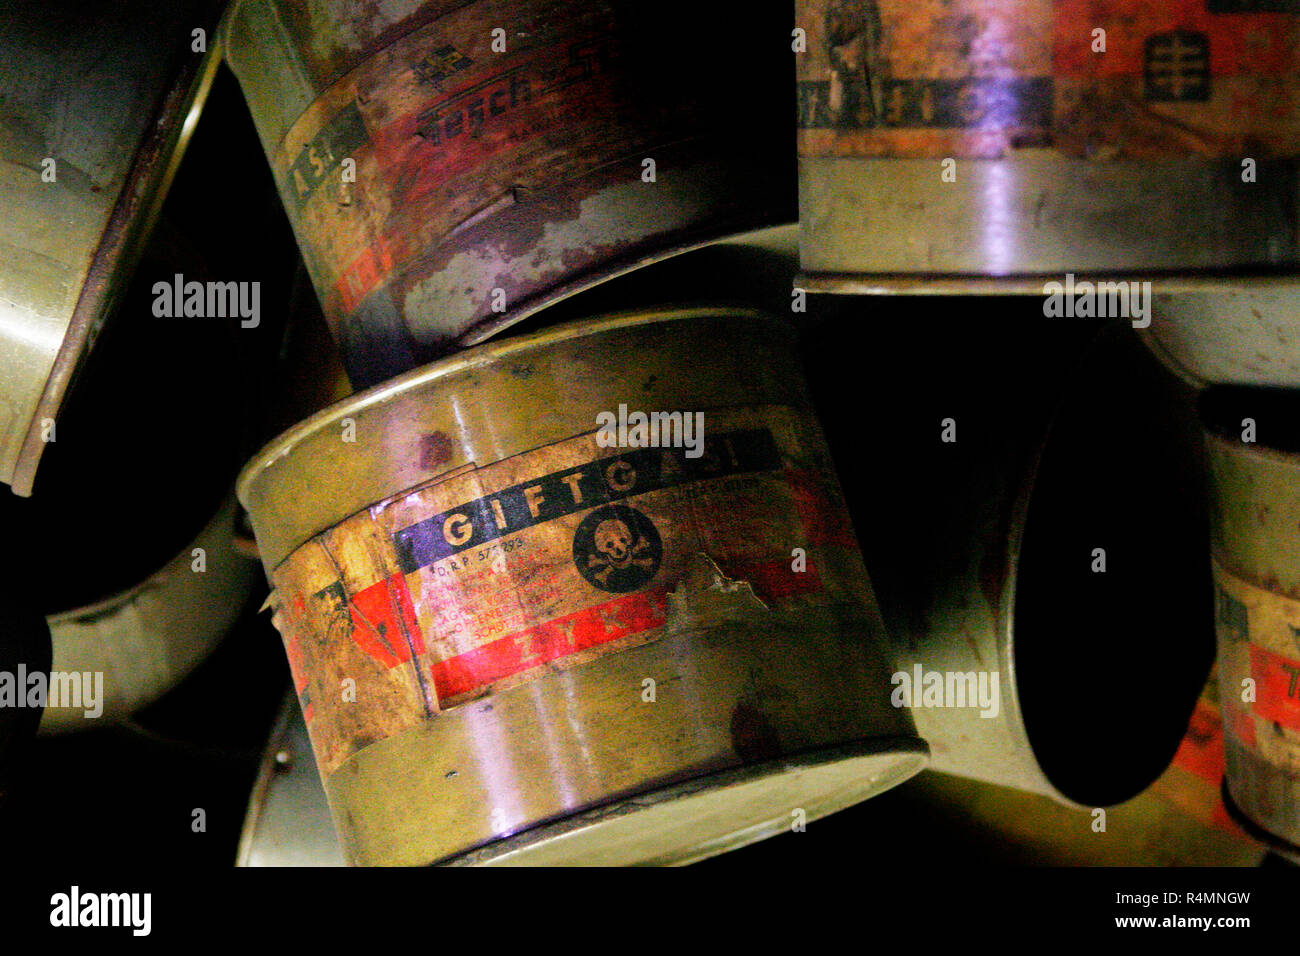 GIFTGAS ! Label of a can of Zyklon B a cyanide-based pesticide used on Jewish prisoners by Nazi Germany in gas chambers Auschwitz-Birkenau - Stock Image